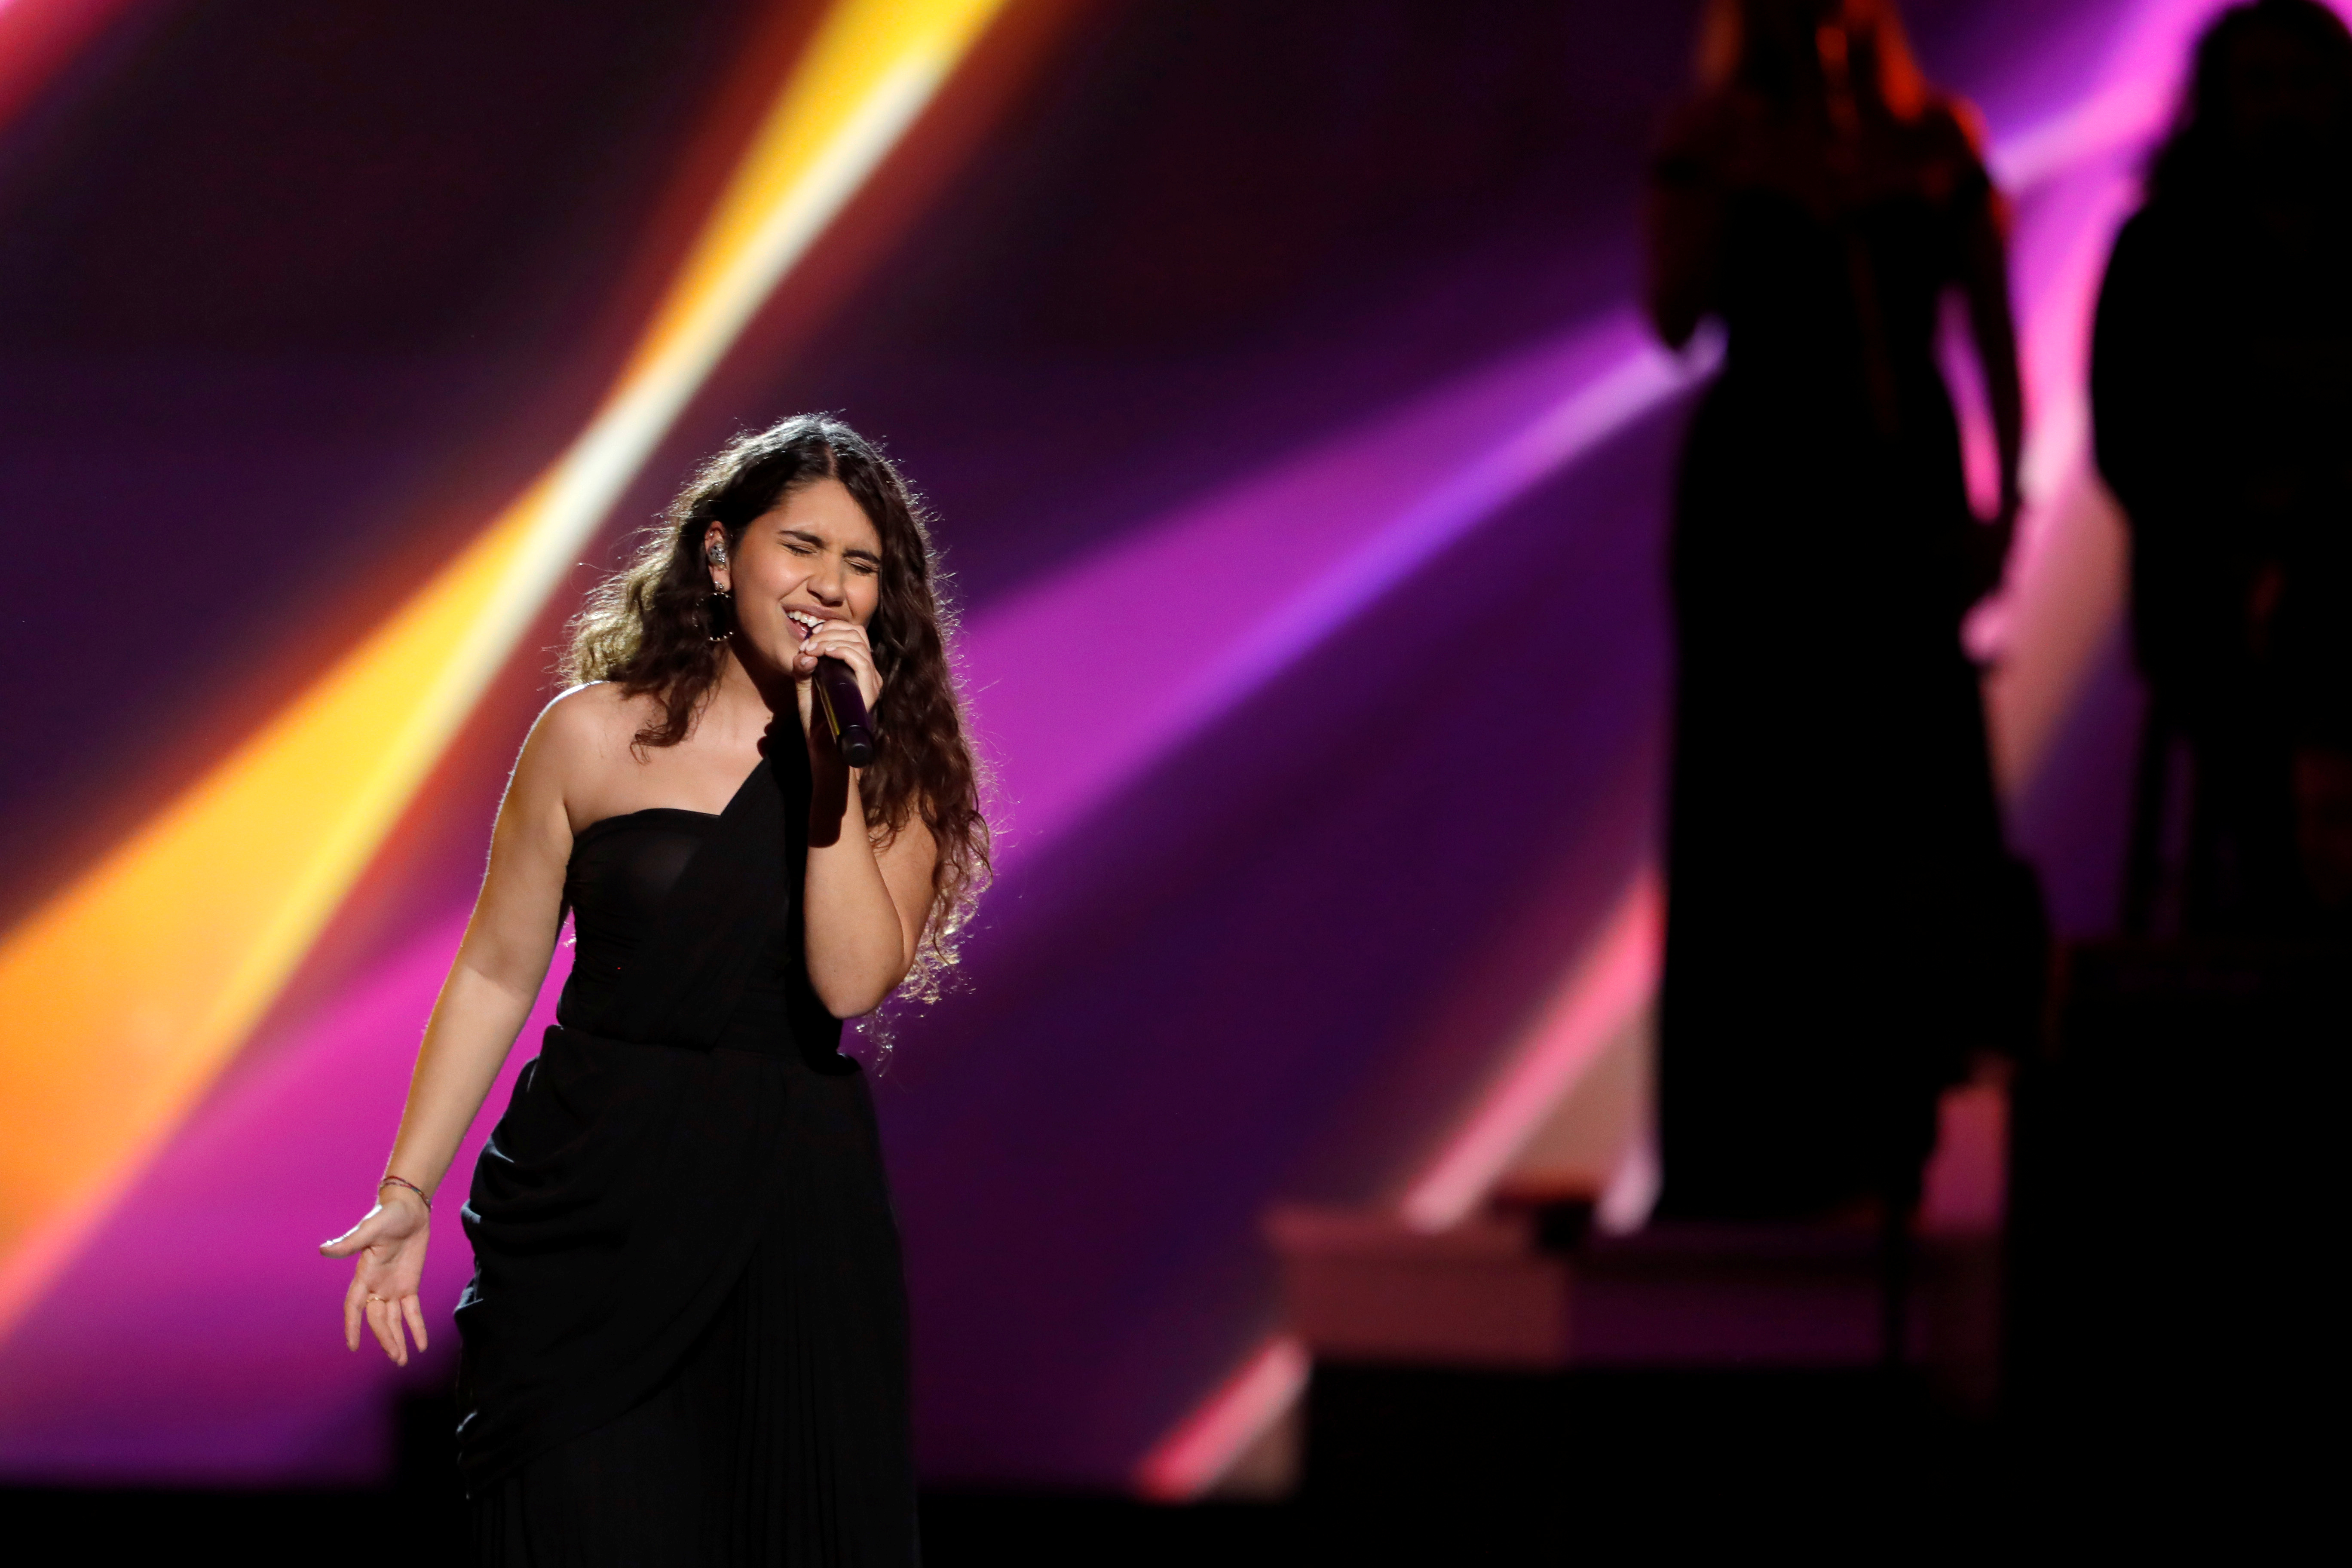 Alessia Cara performs during the 2019 Latin Recording Academy's Person of the Year Gala honoring Colombian musician Juanes at the MGM Grand hotel-casino, in Las Vegas, Nevada, U.S. November 13, 2019. REUTERS/Steve Marcus